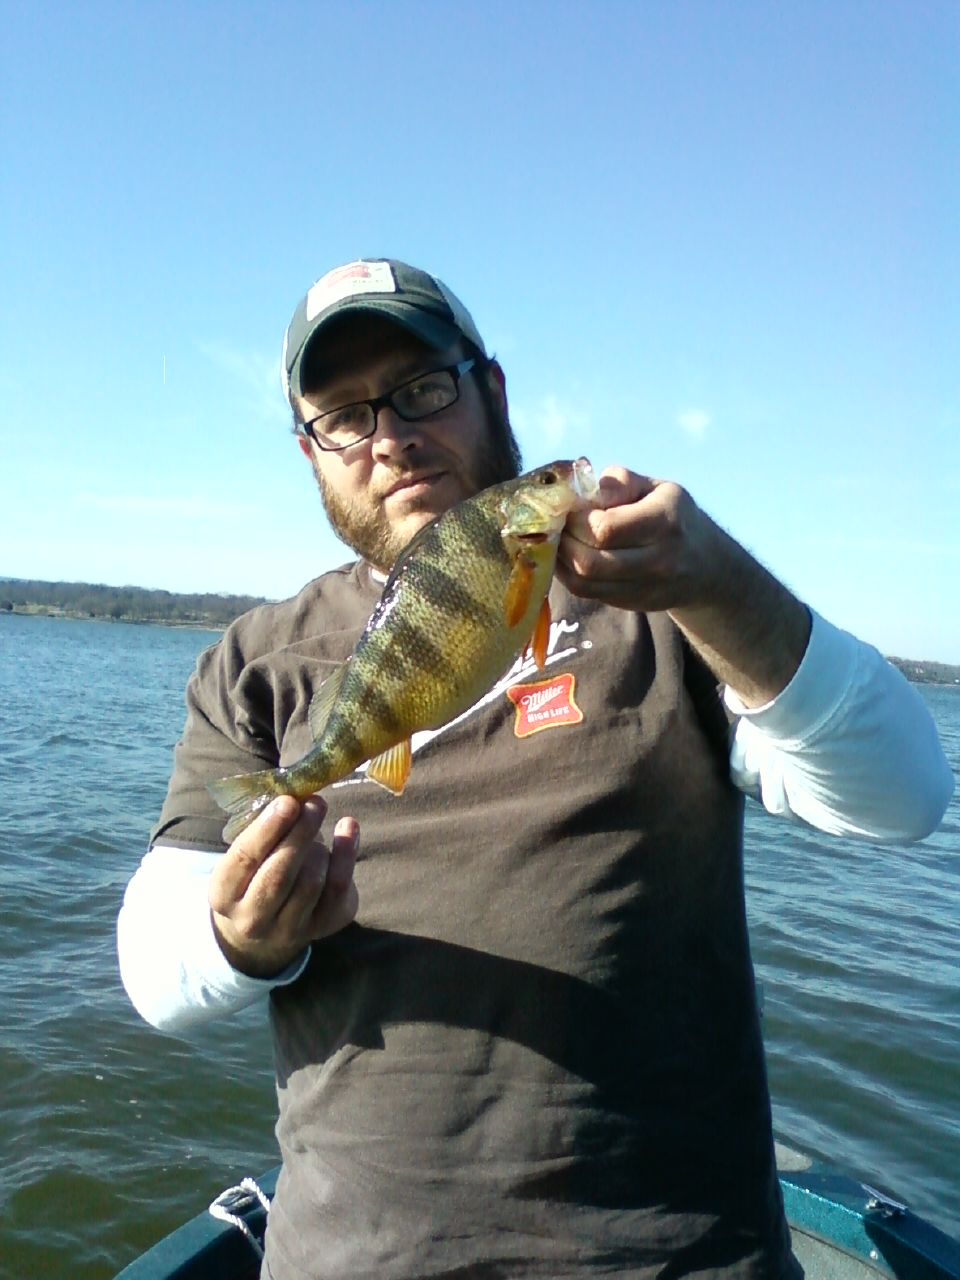 T.A.R.P Yellow Perch on the Chick.